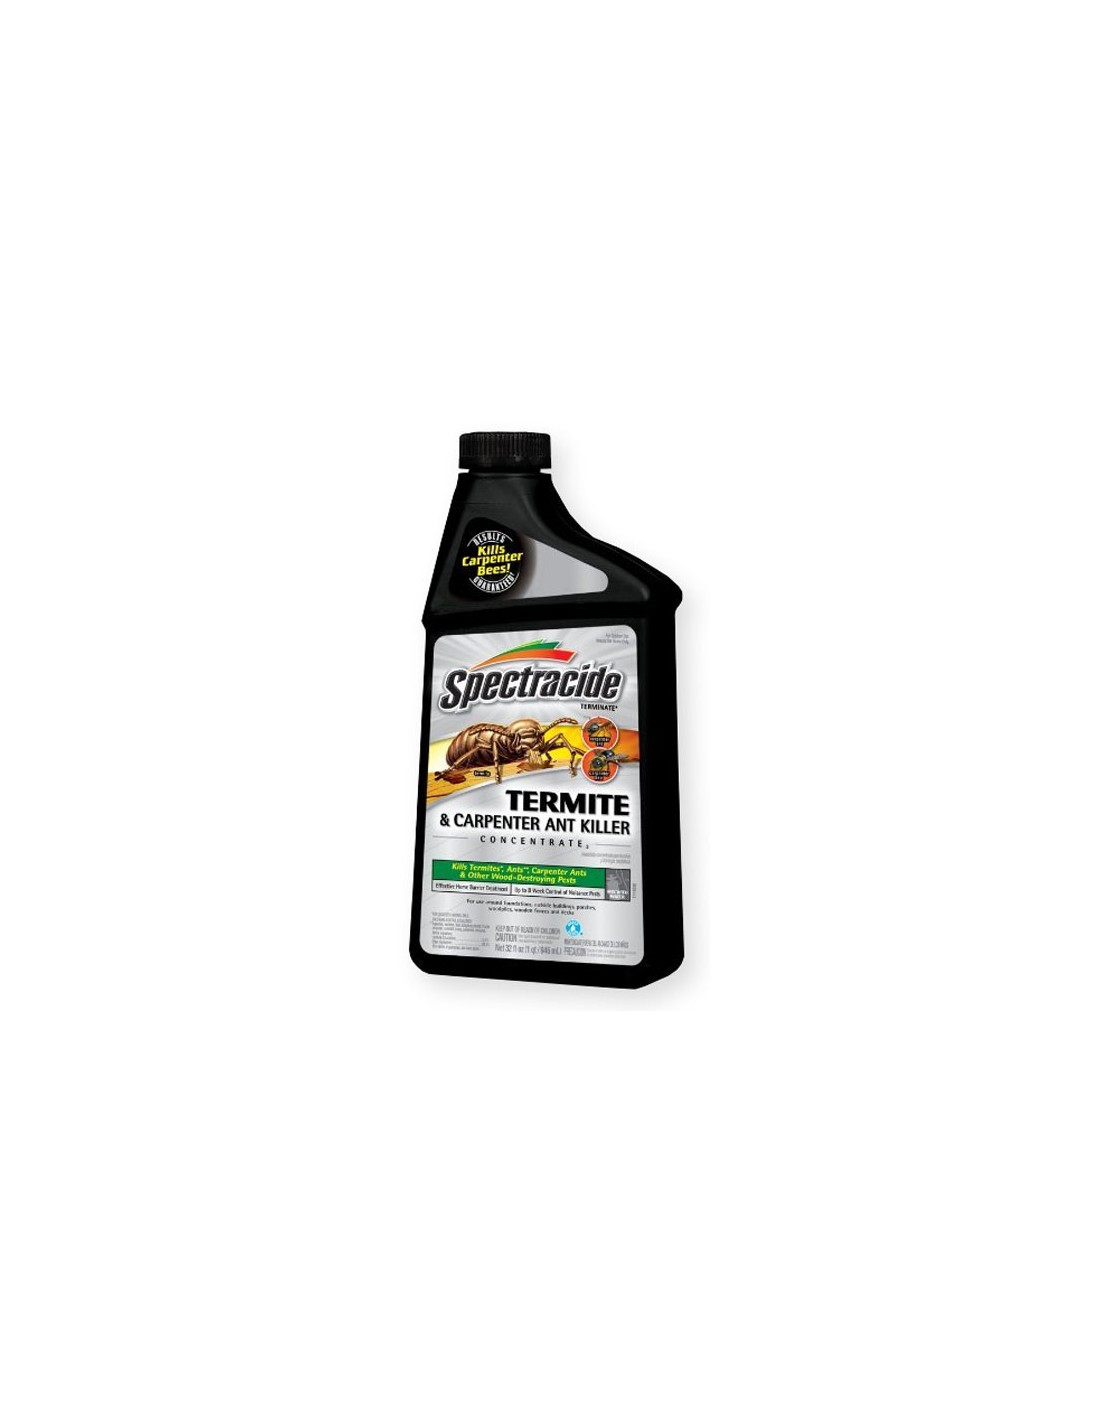 How much water per gallon do I add to Termite and carpenter ant killer concentrate